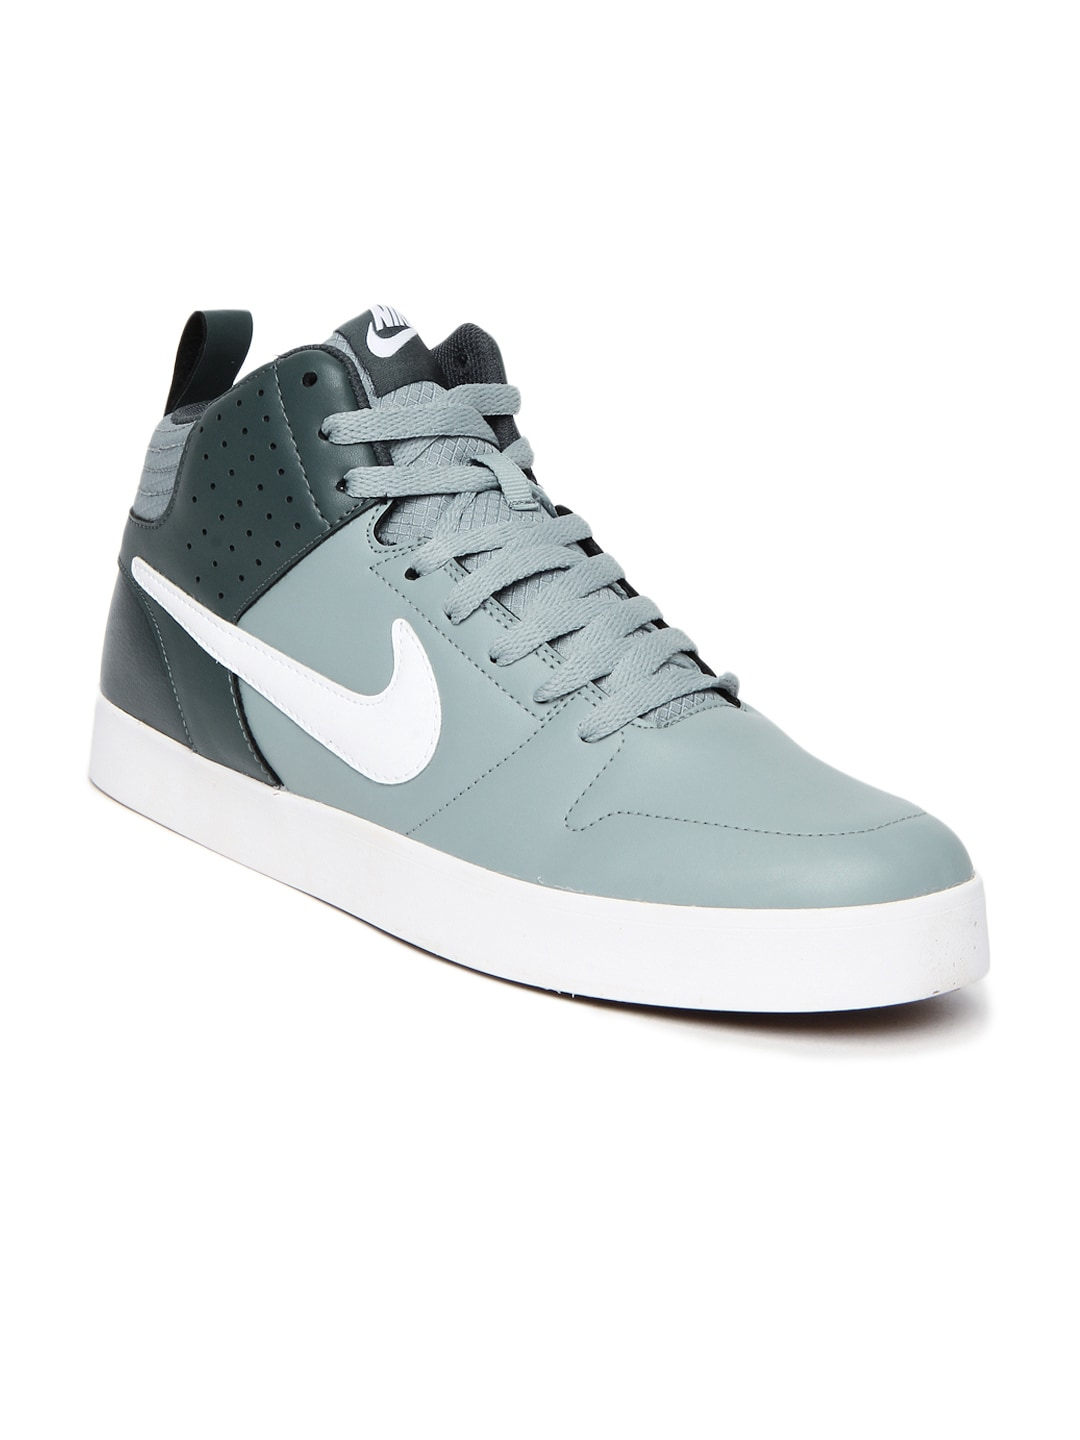 Nike Price 002 Grey Men Best 669590 Casual Shoes Liteforce Iii In CrdshQxtB